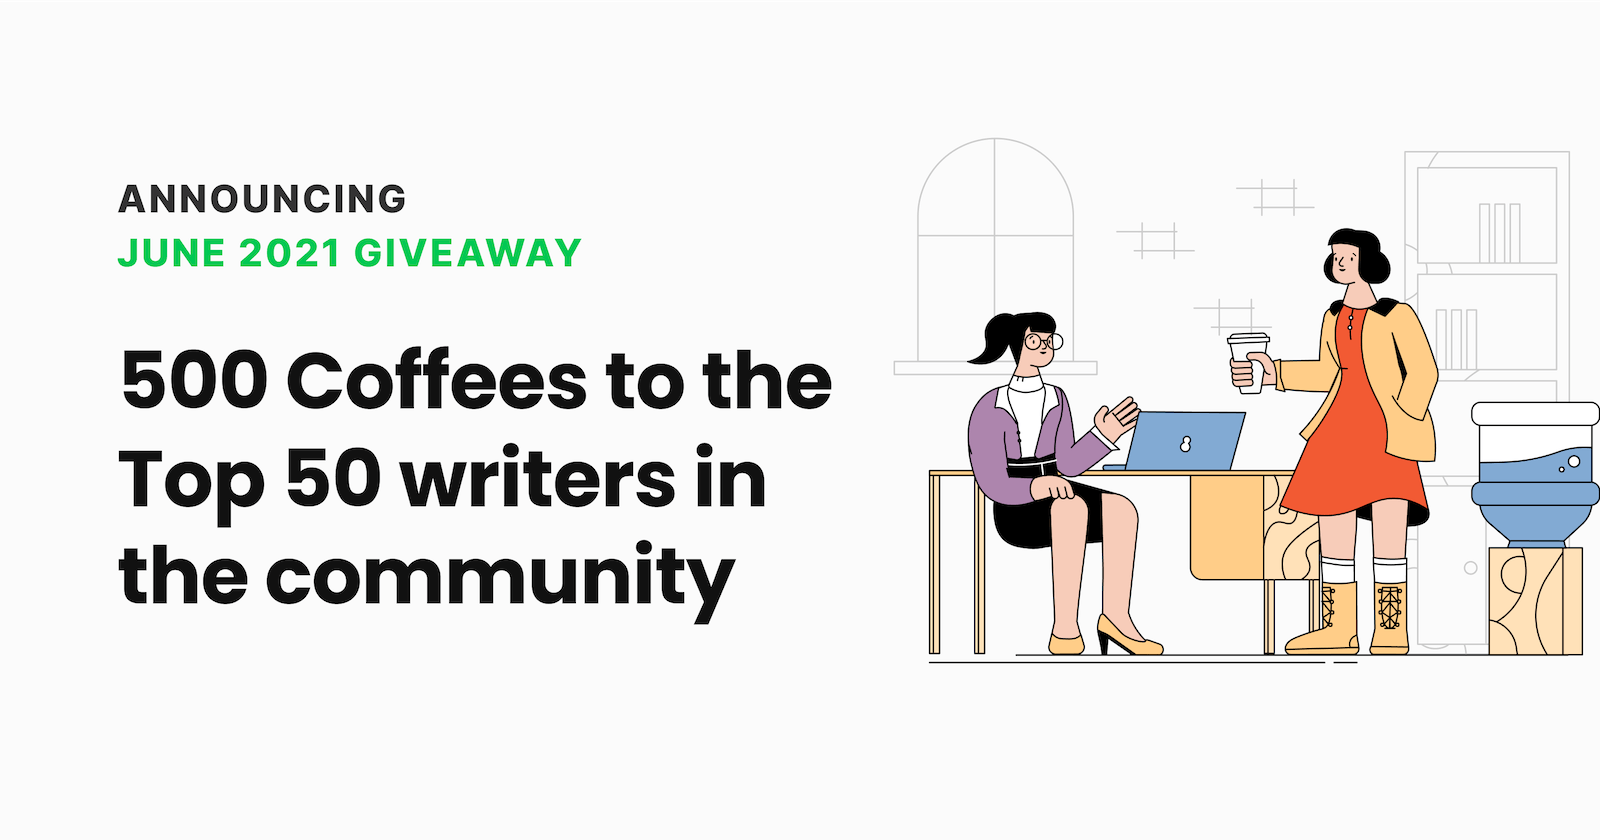 Hashnode June Giveaway! 💸 ☕️ 500 coffees to the top 50 writers in the community.